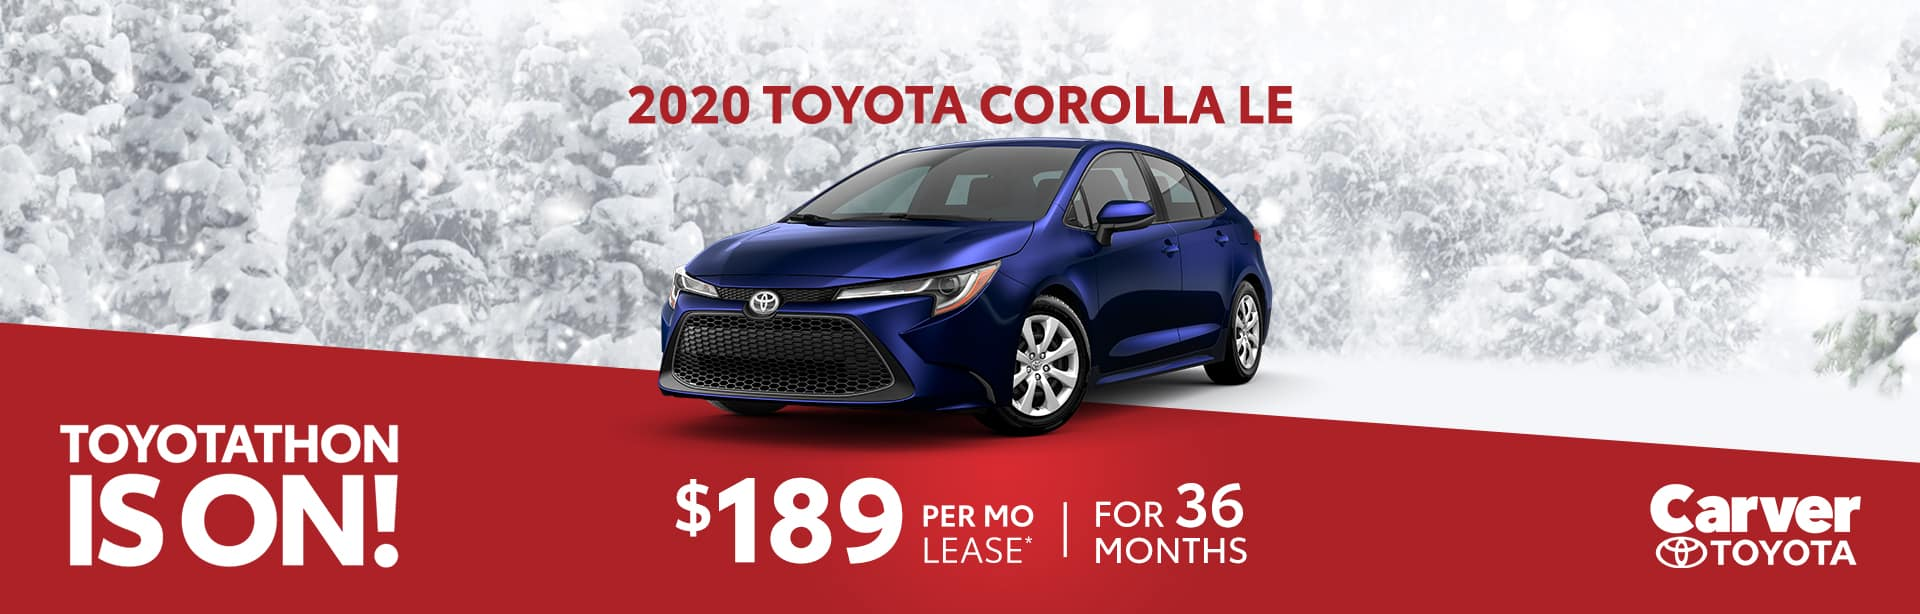 Lease a 2020 Corolla for $189 a month near Indianapolis, Indiana